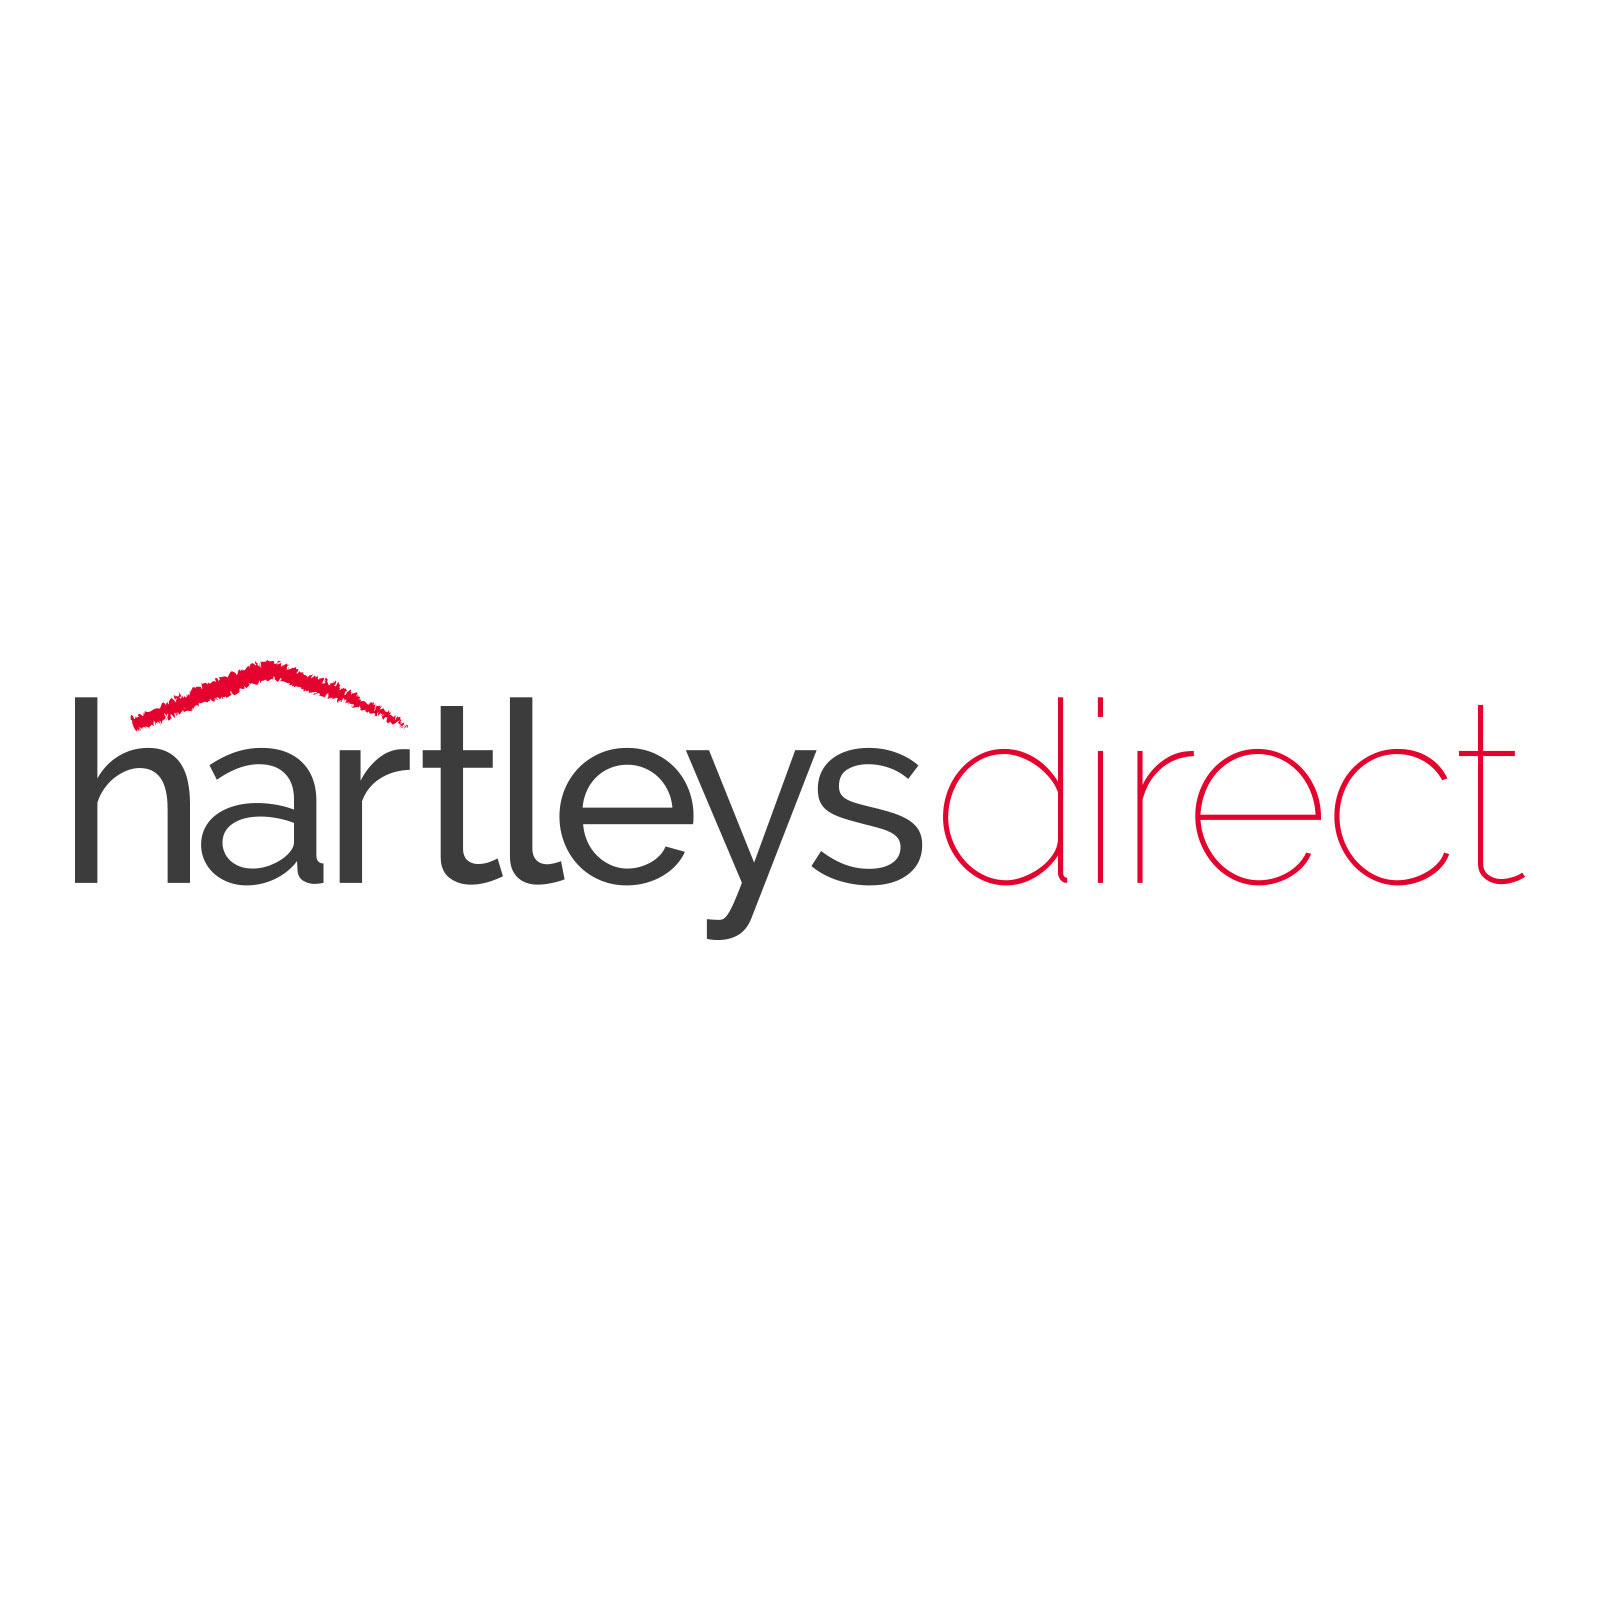 Hartleys-Brushed-Steel-Wall-Mounted-Letter-Box-on-White-Background.jpg